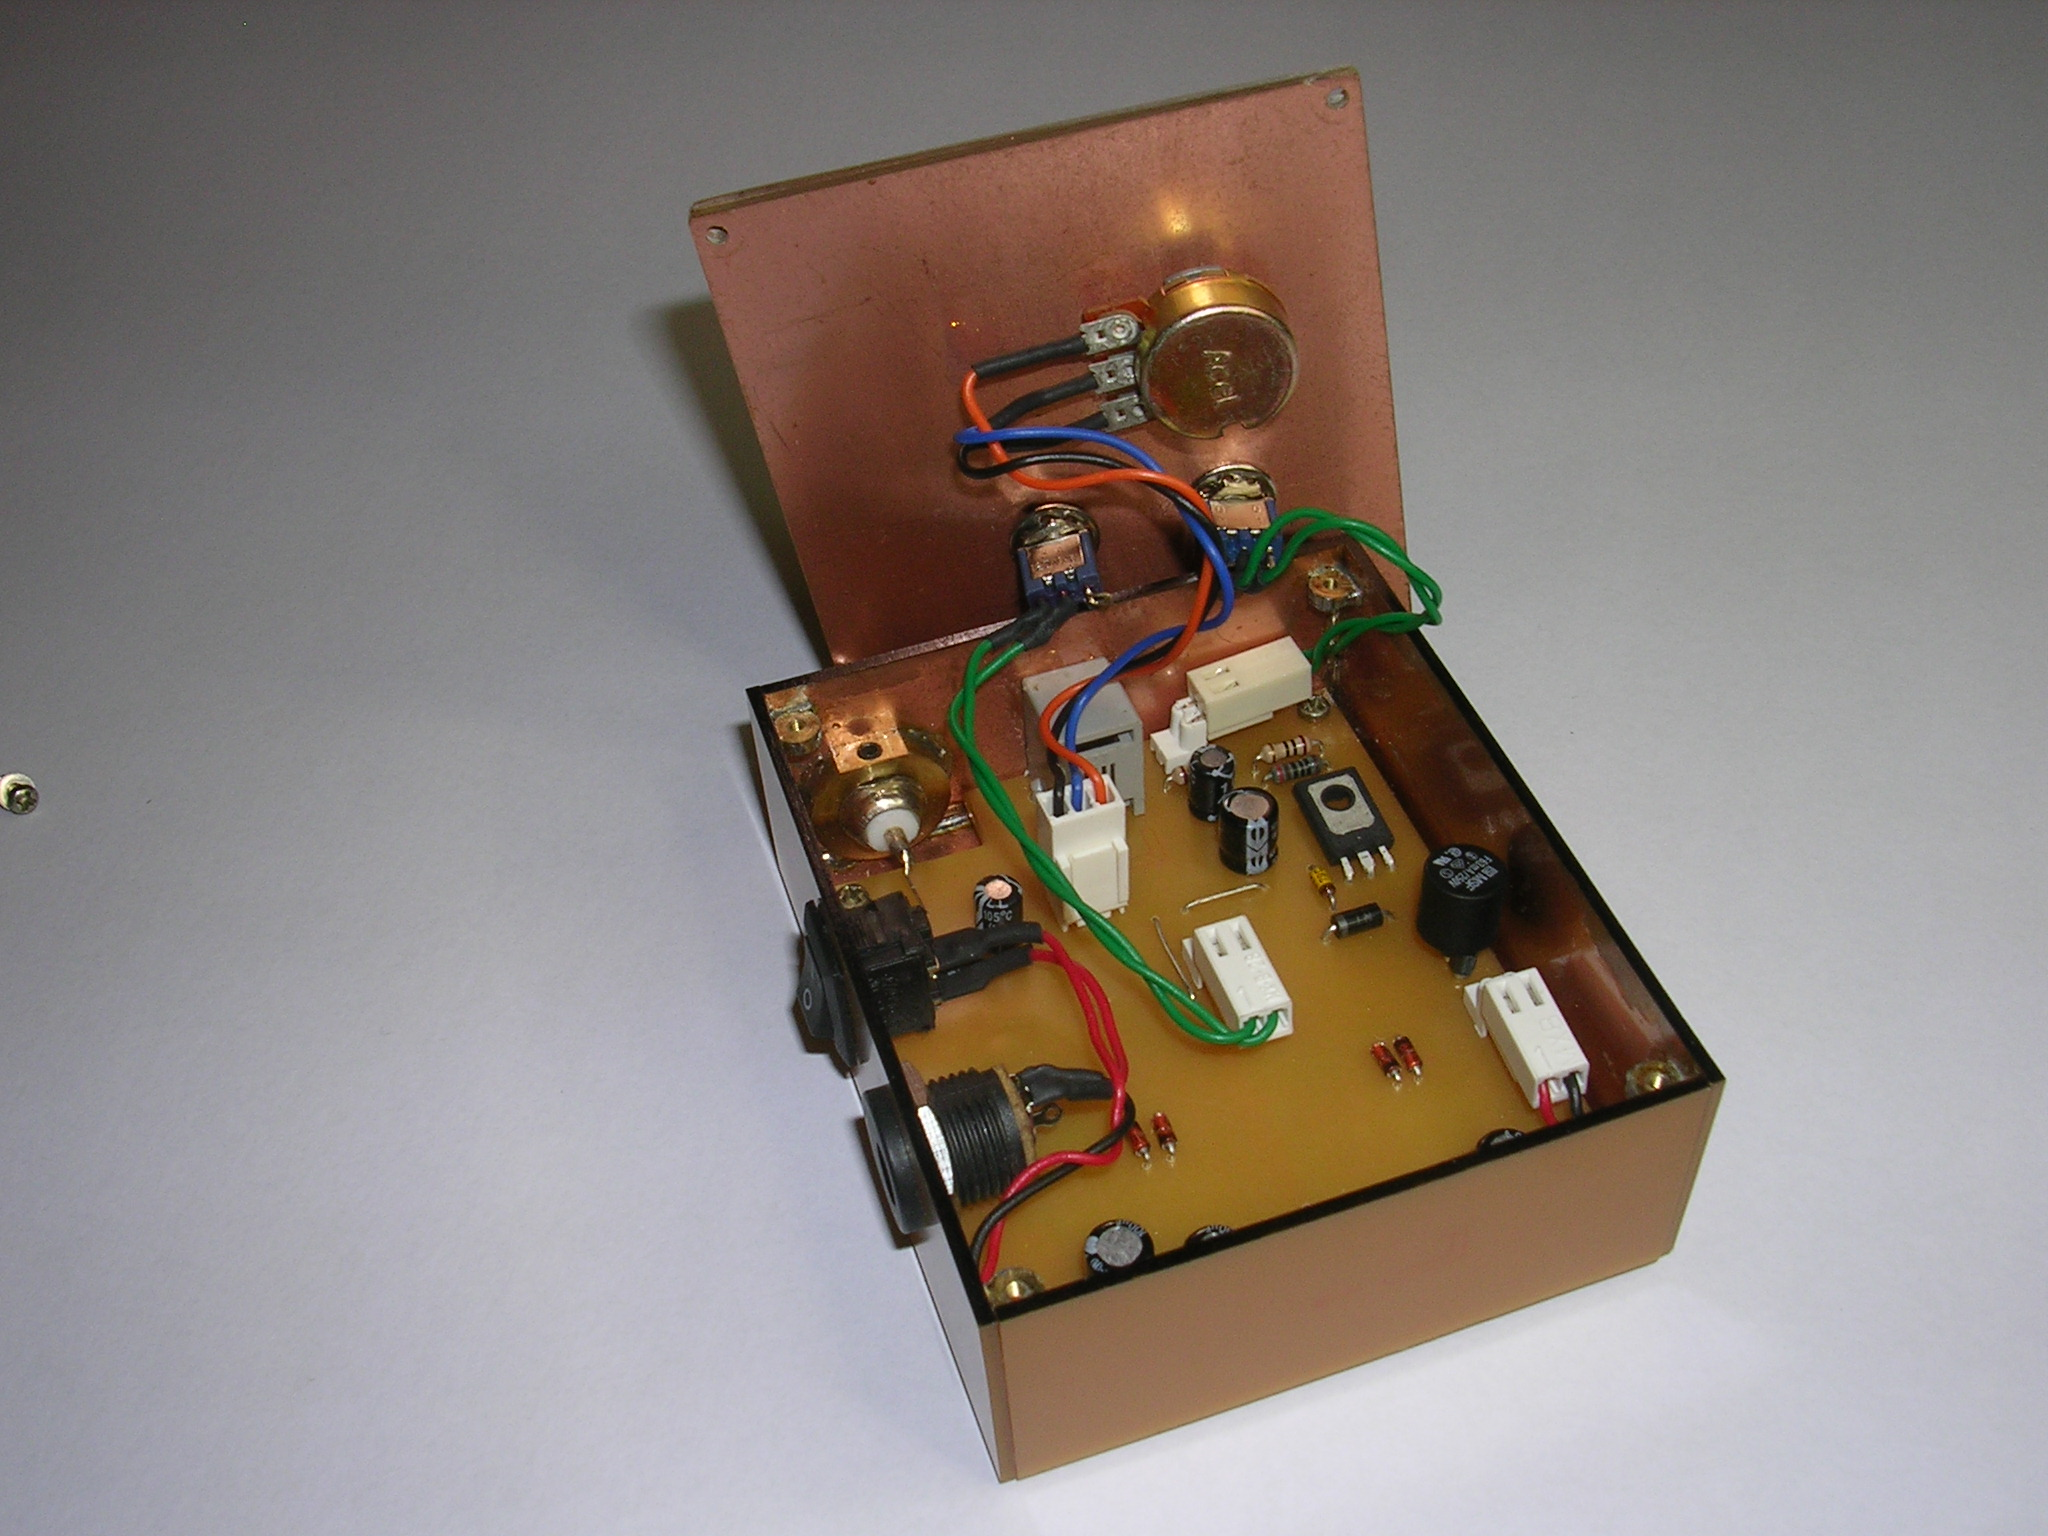 Two Tone Generator Vk5fe Schematic Internal View